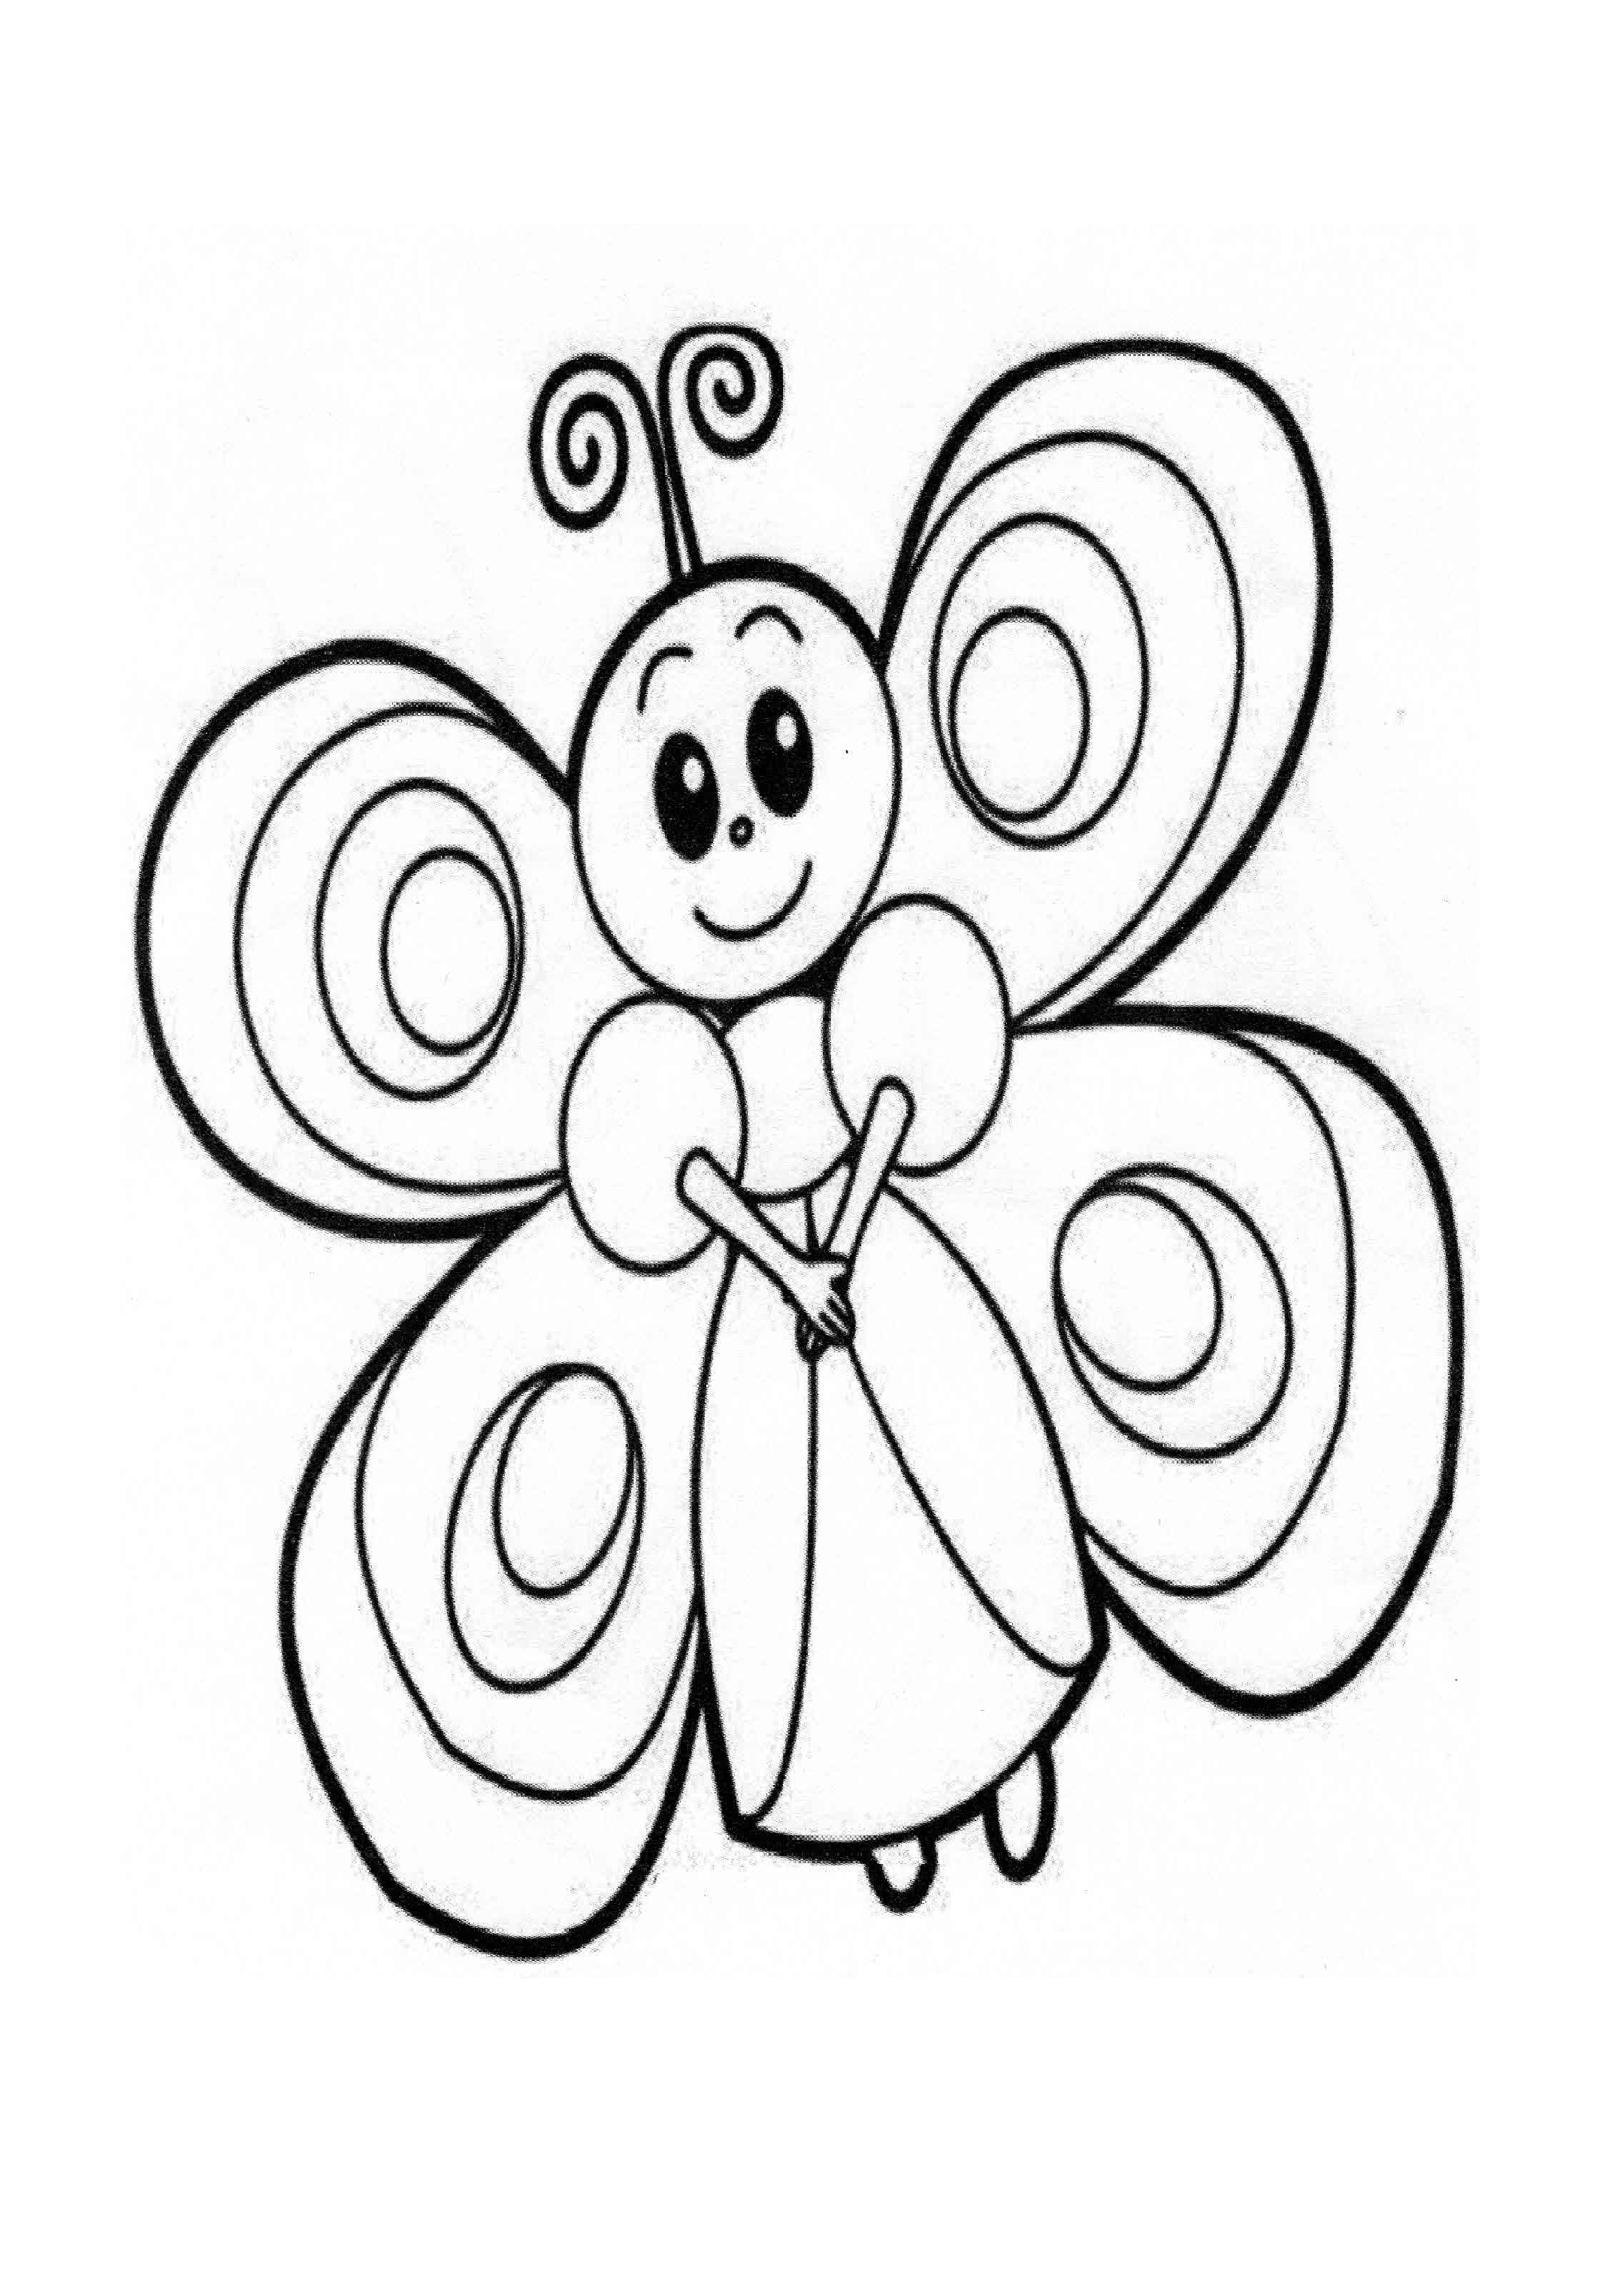 butterfly coloring pages free printable printable butterfly coloring pages for kids cool2bkids coloring butterfly free pages printable